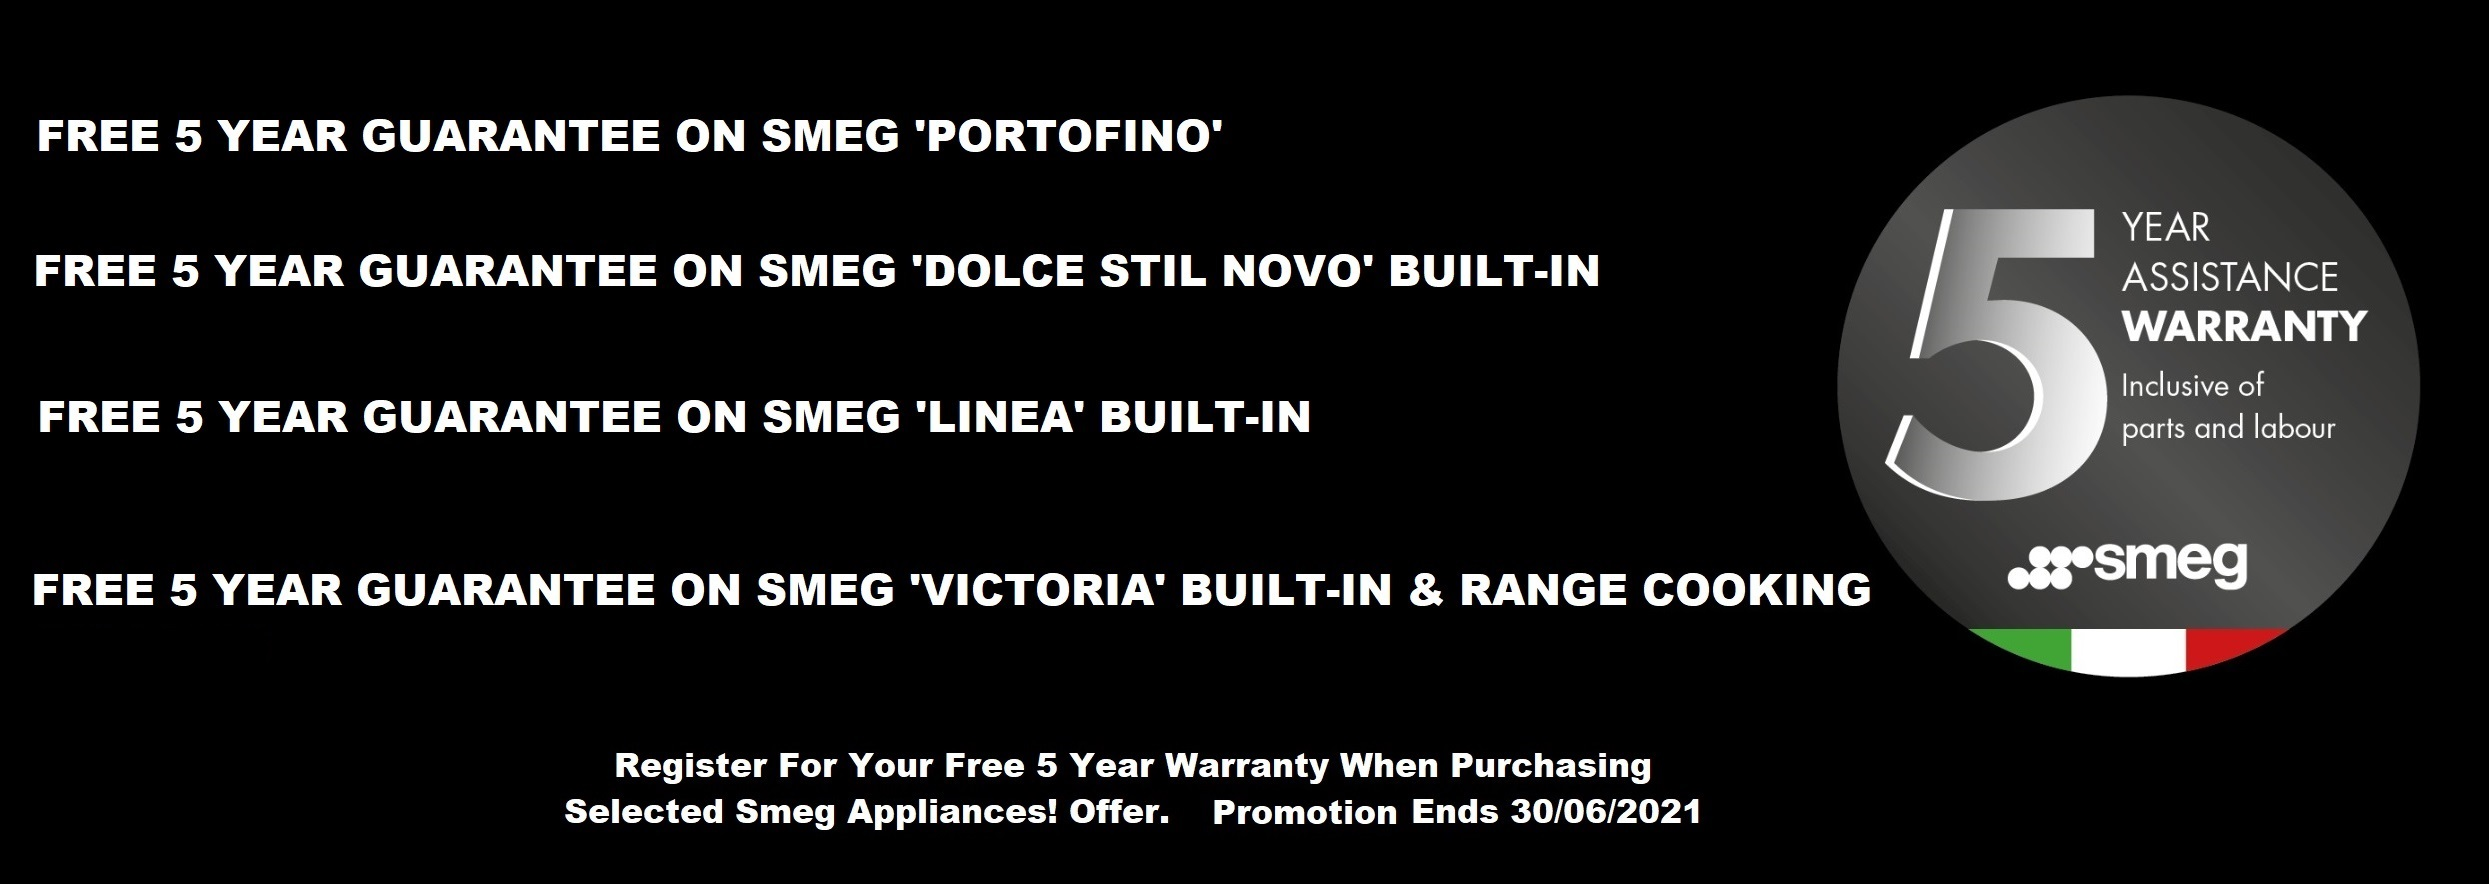 Smeg EXCLUSIVE 5 YEAR WARRANTY PROMOTION